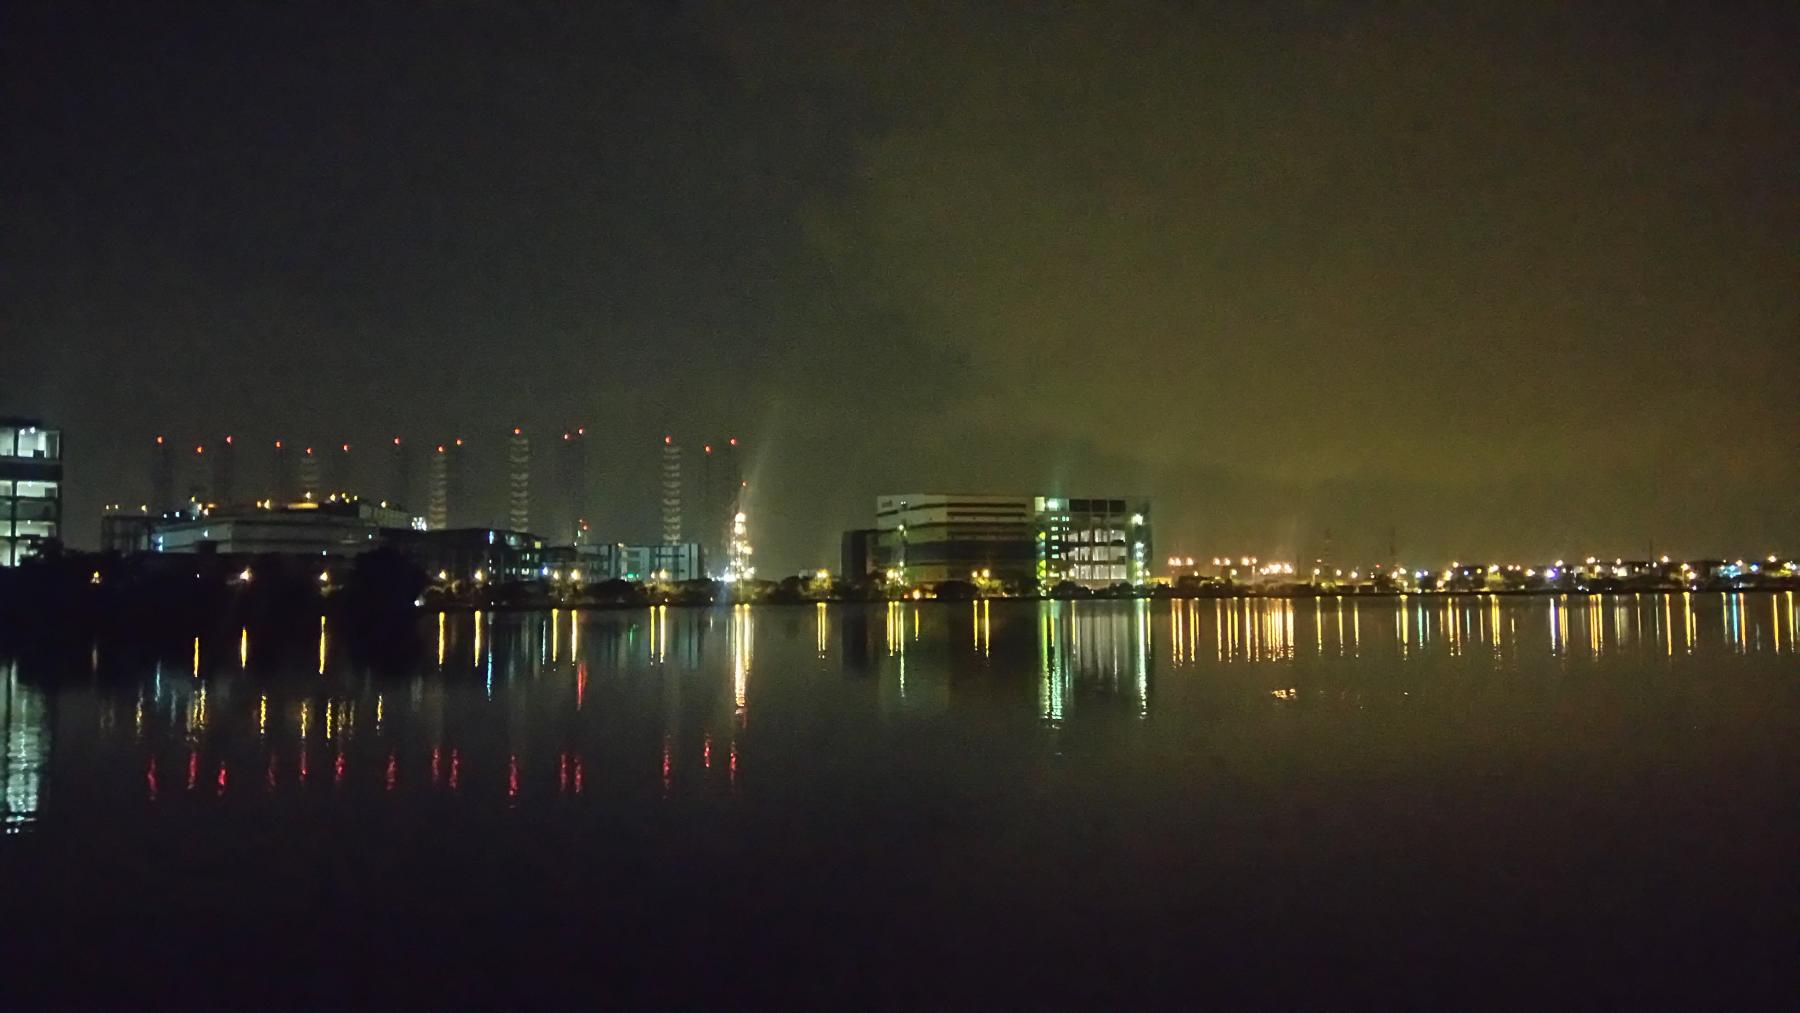 Let's go on a night hike! starting at Jurong Fishery Port Singapore